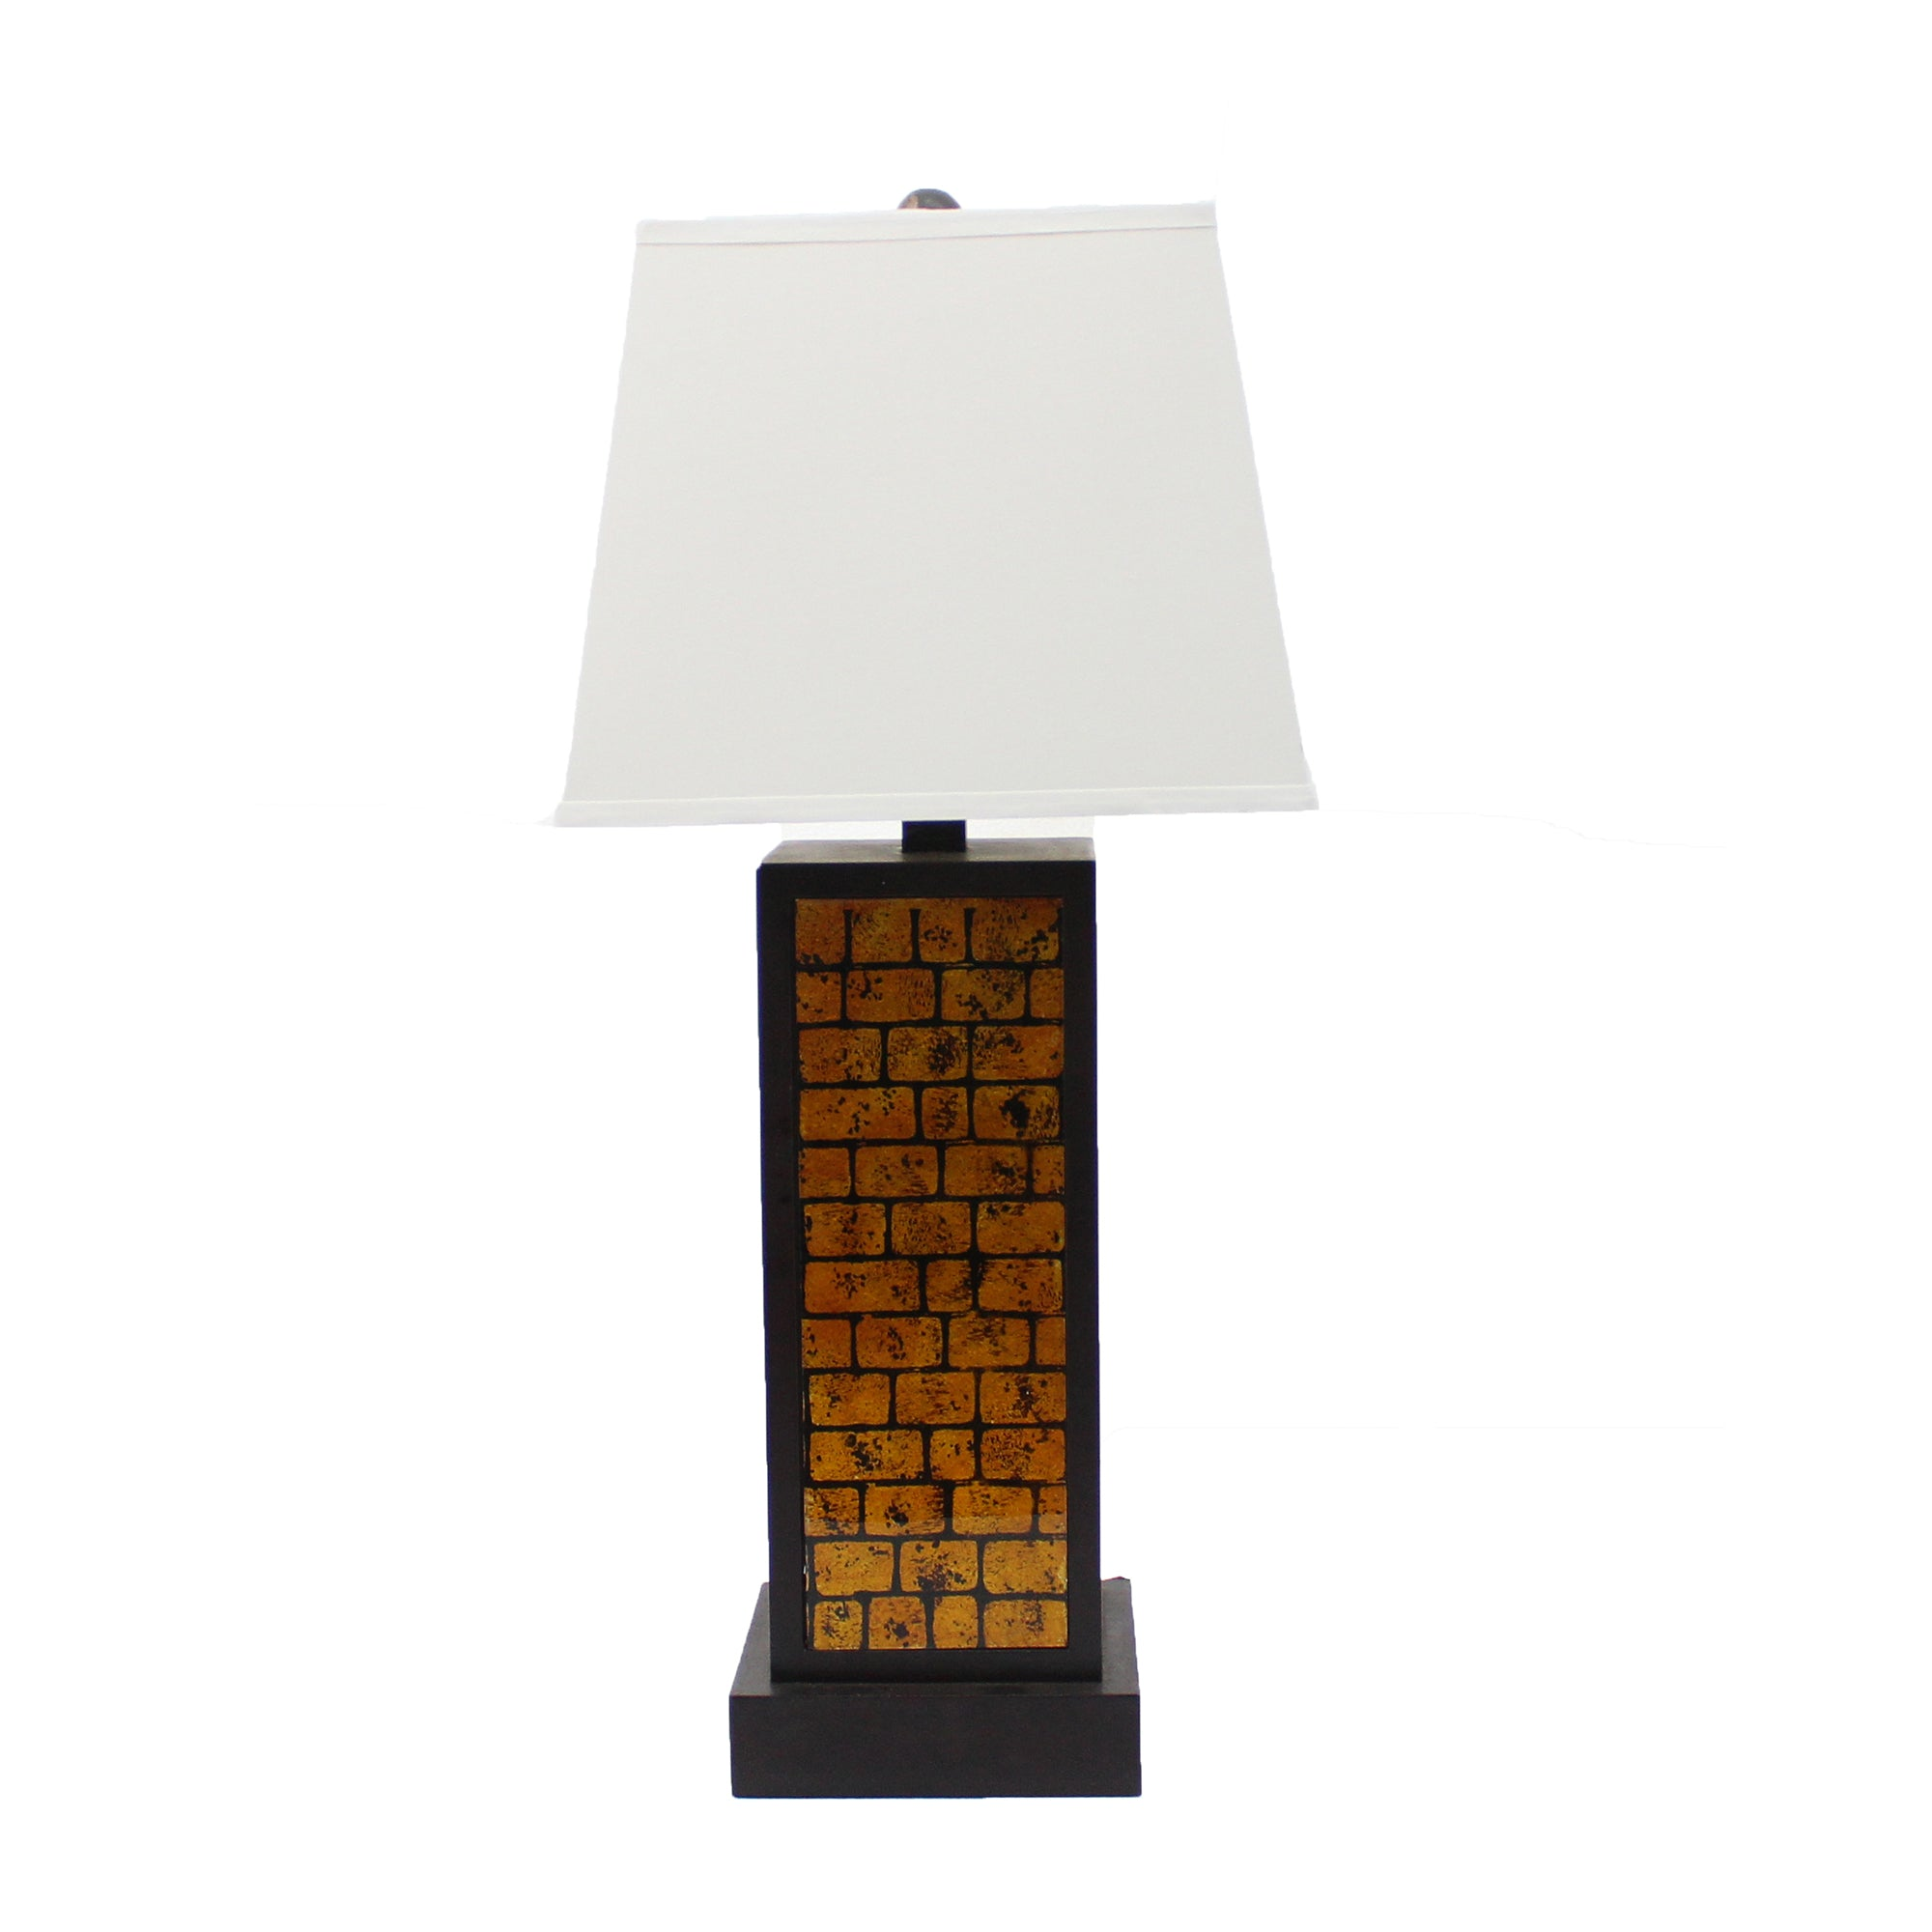 "13"" x 15"" x 30.75"" Black, Metal With Yellow Brick Pattern - Table Lamp"